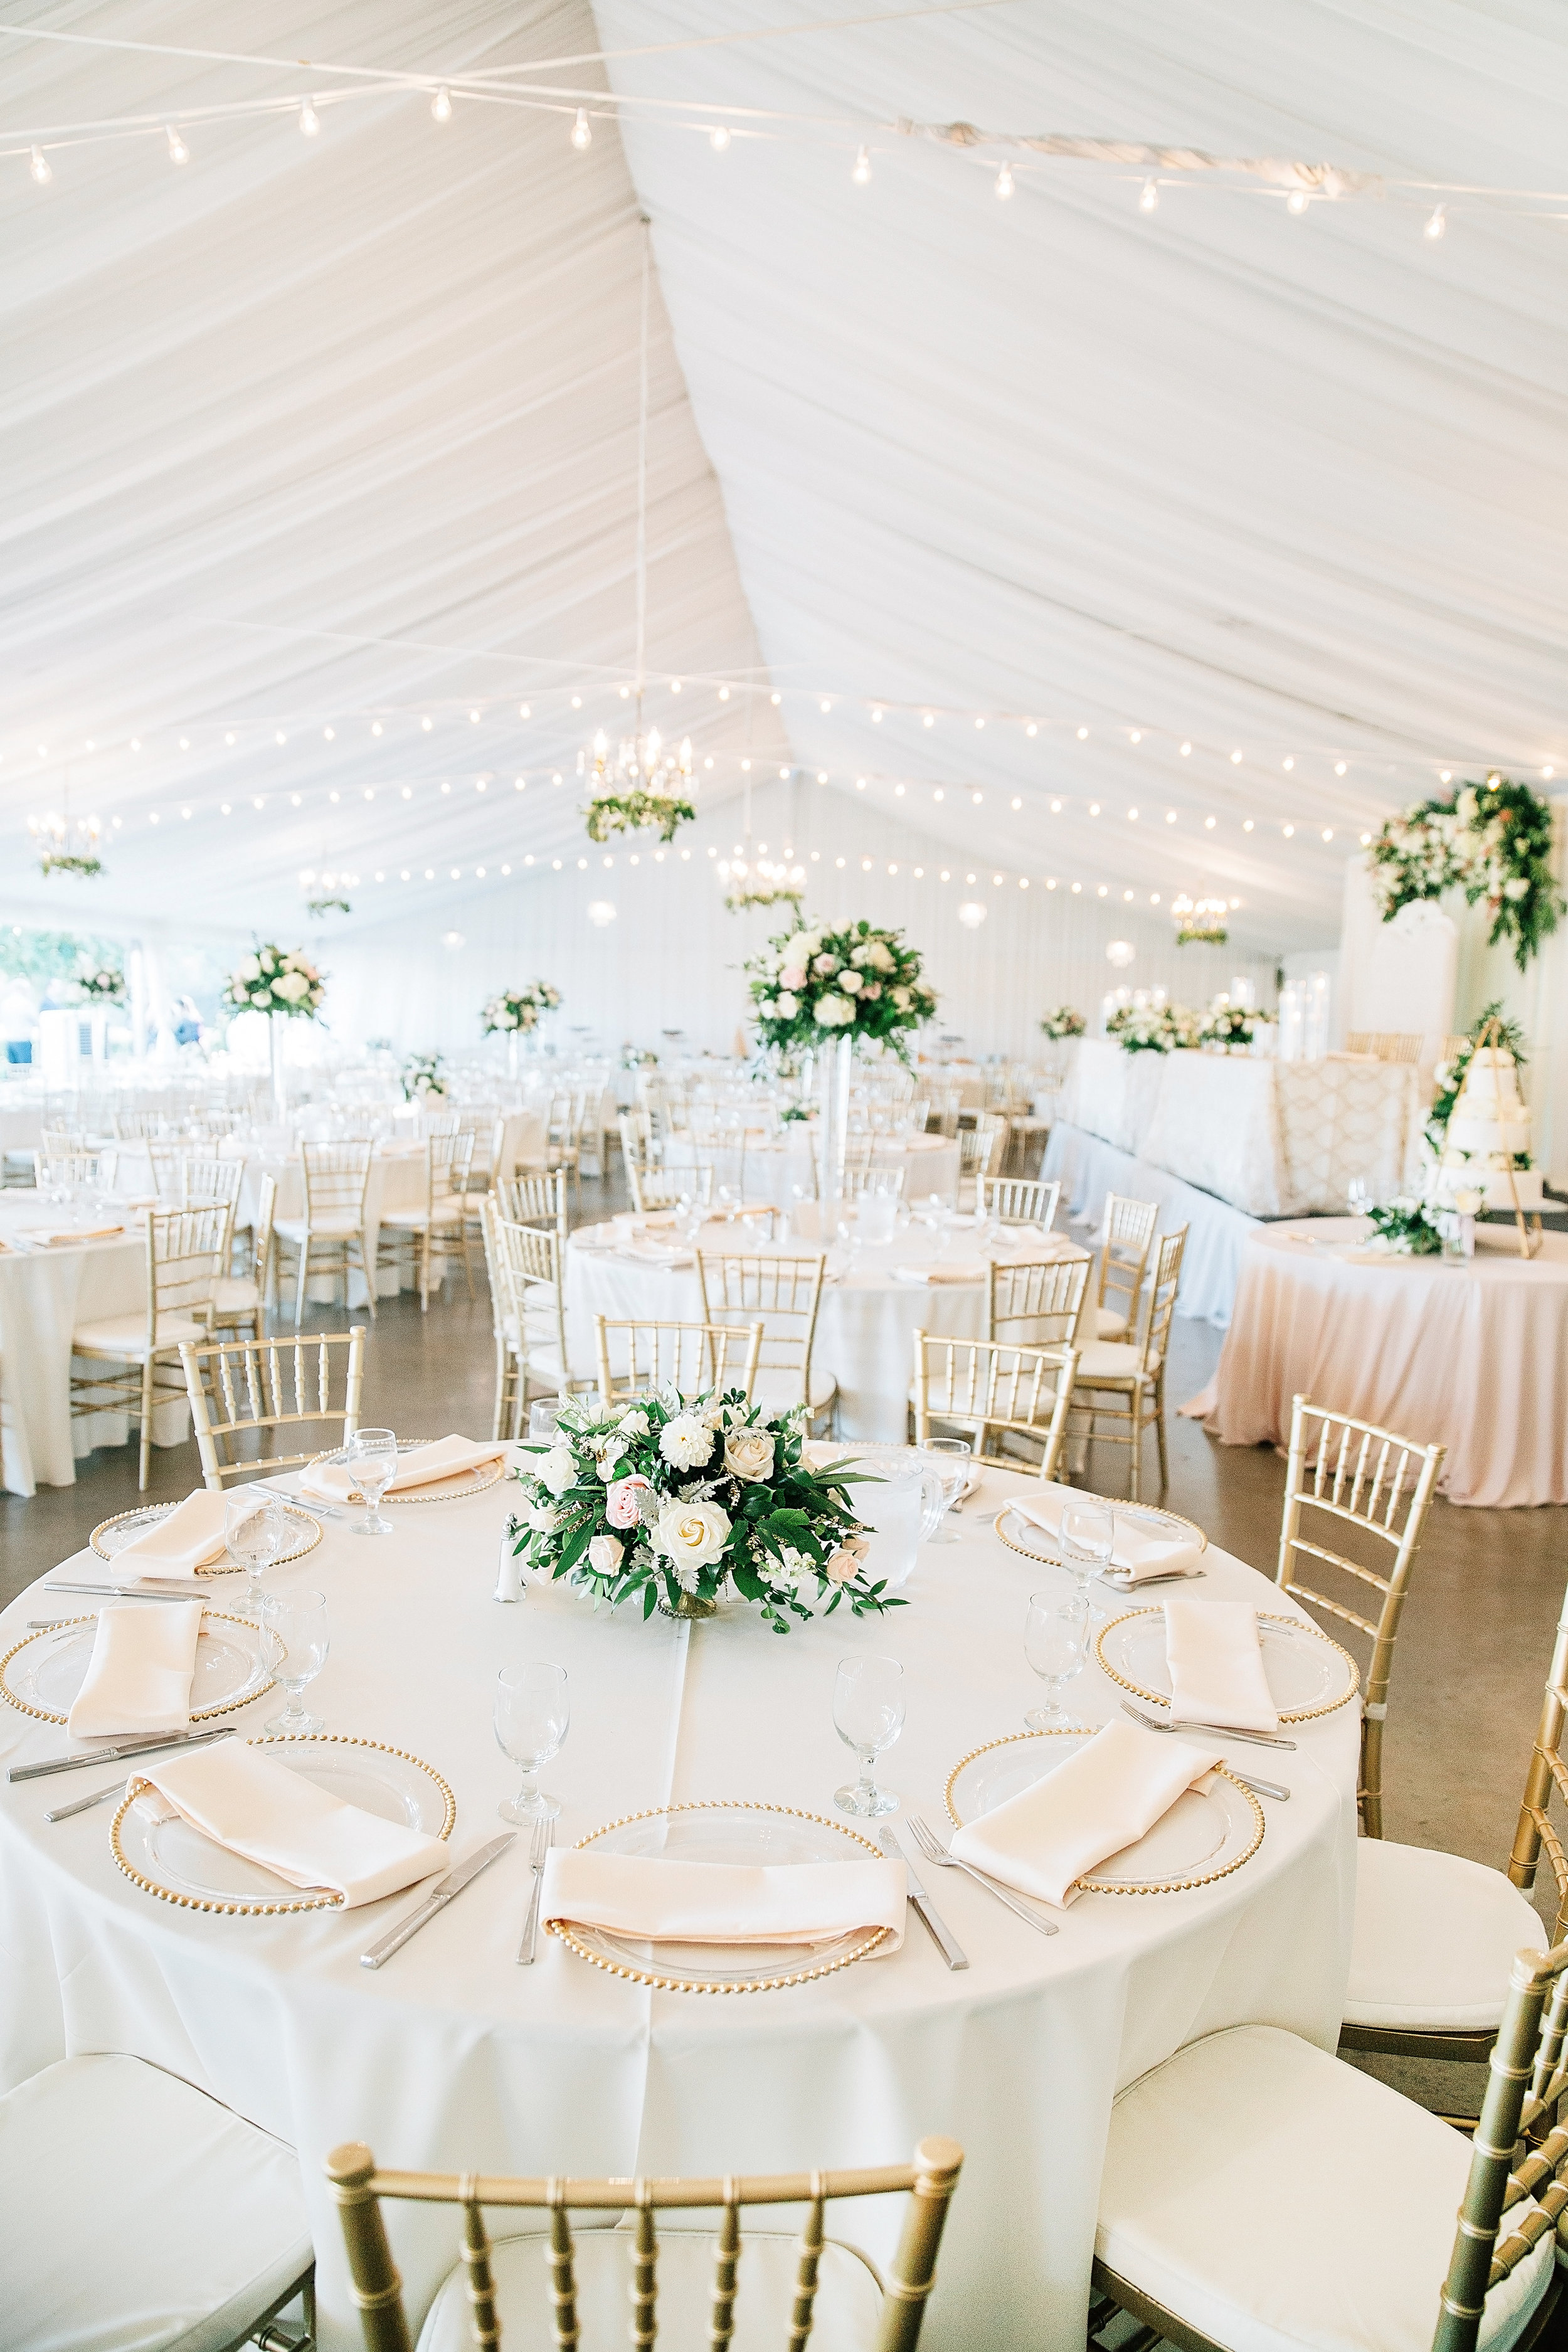 tall_short_centerpieces_white_blush_flowers_greenery_violette_fleurs_haggin_oaks_anna_perevertaylo.jpg